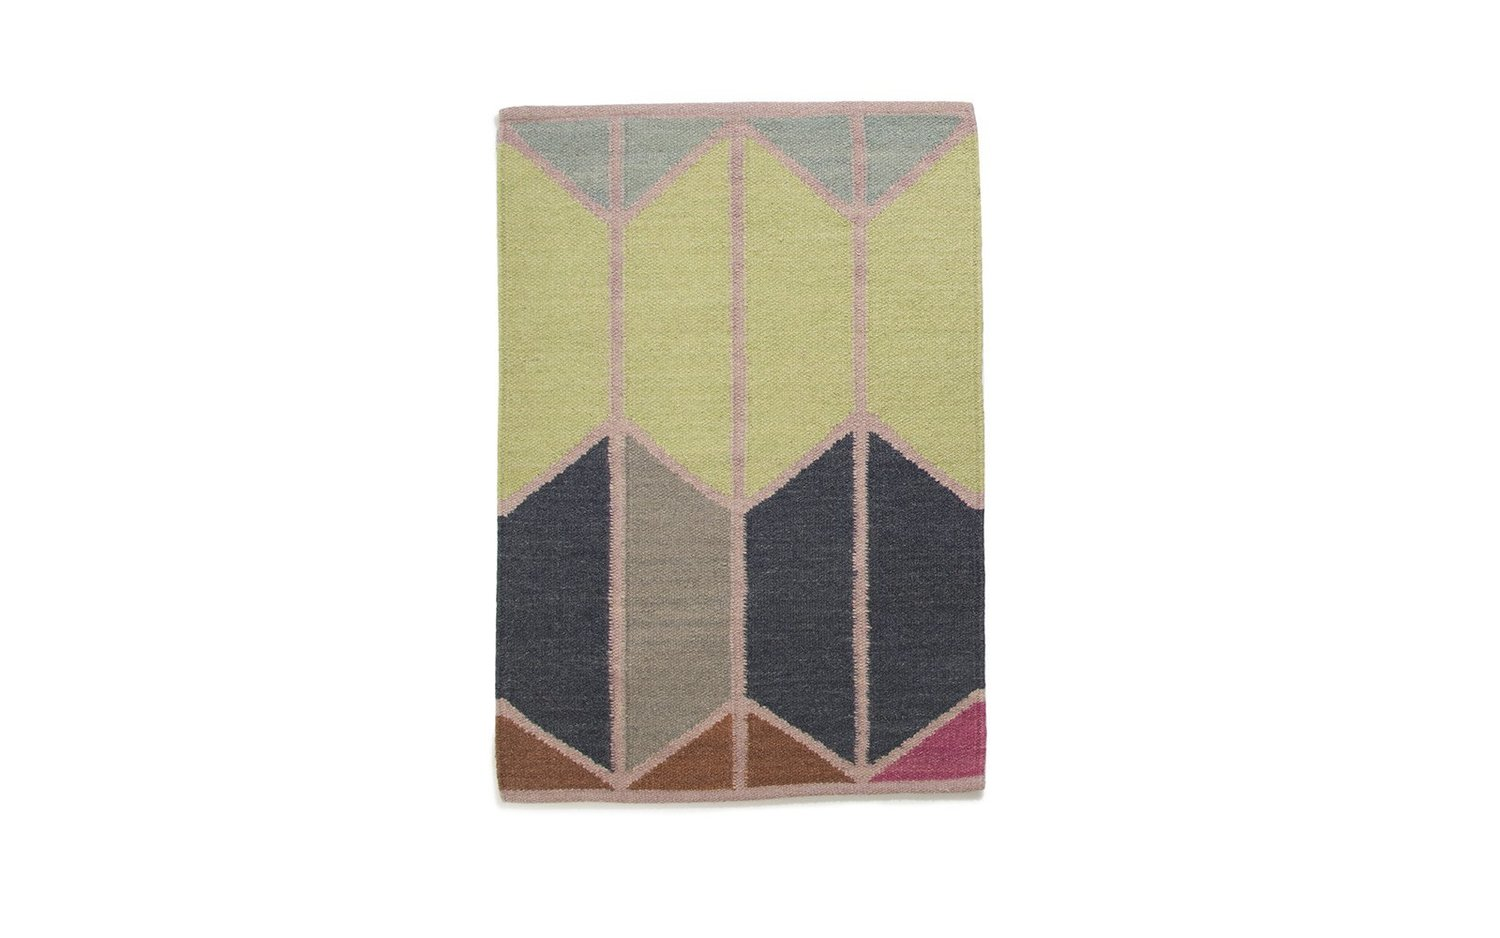 Alyson fox shapes rug 7